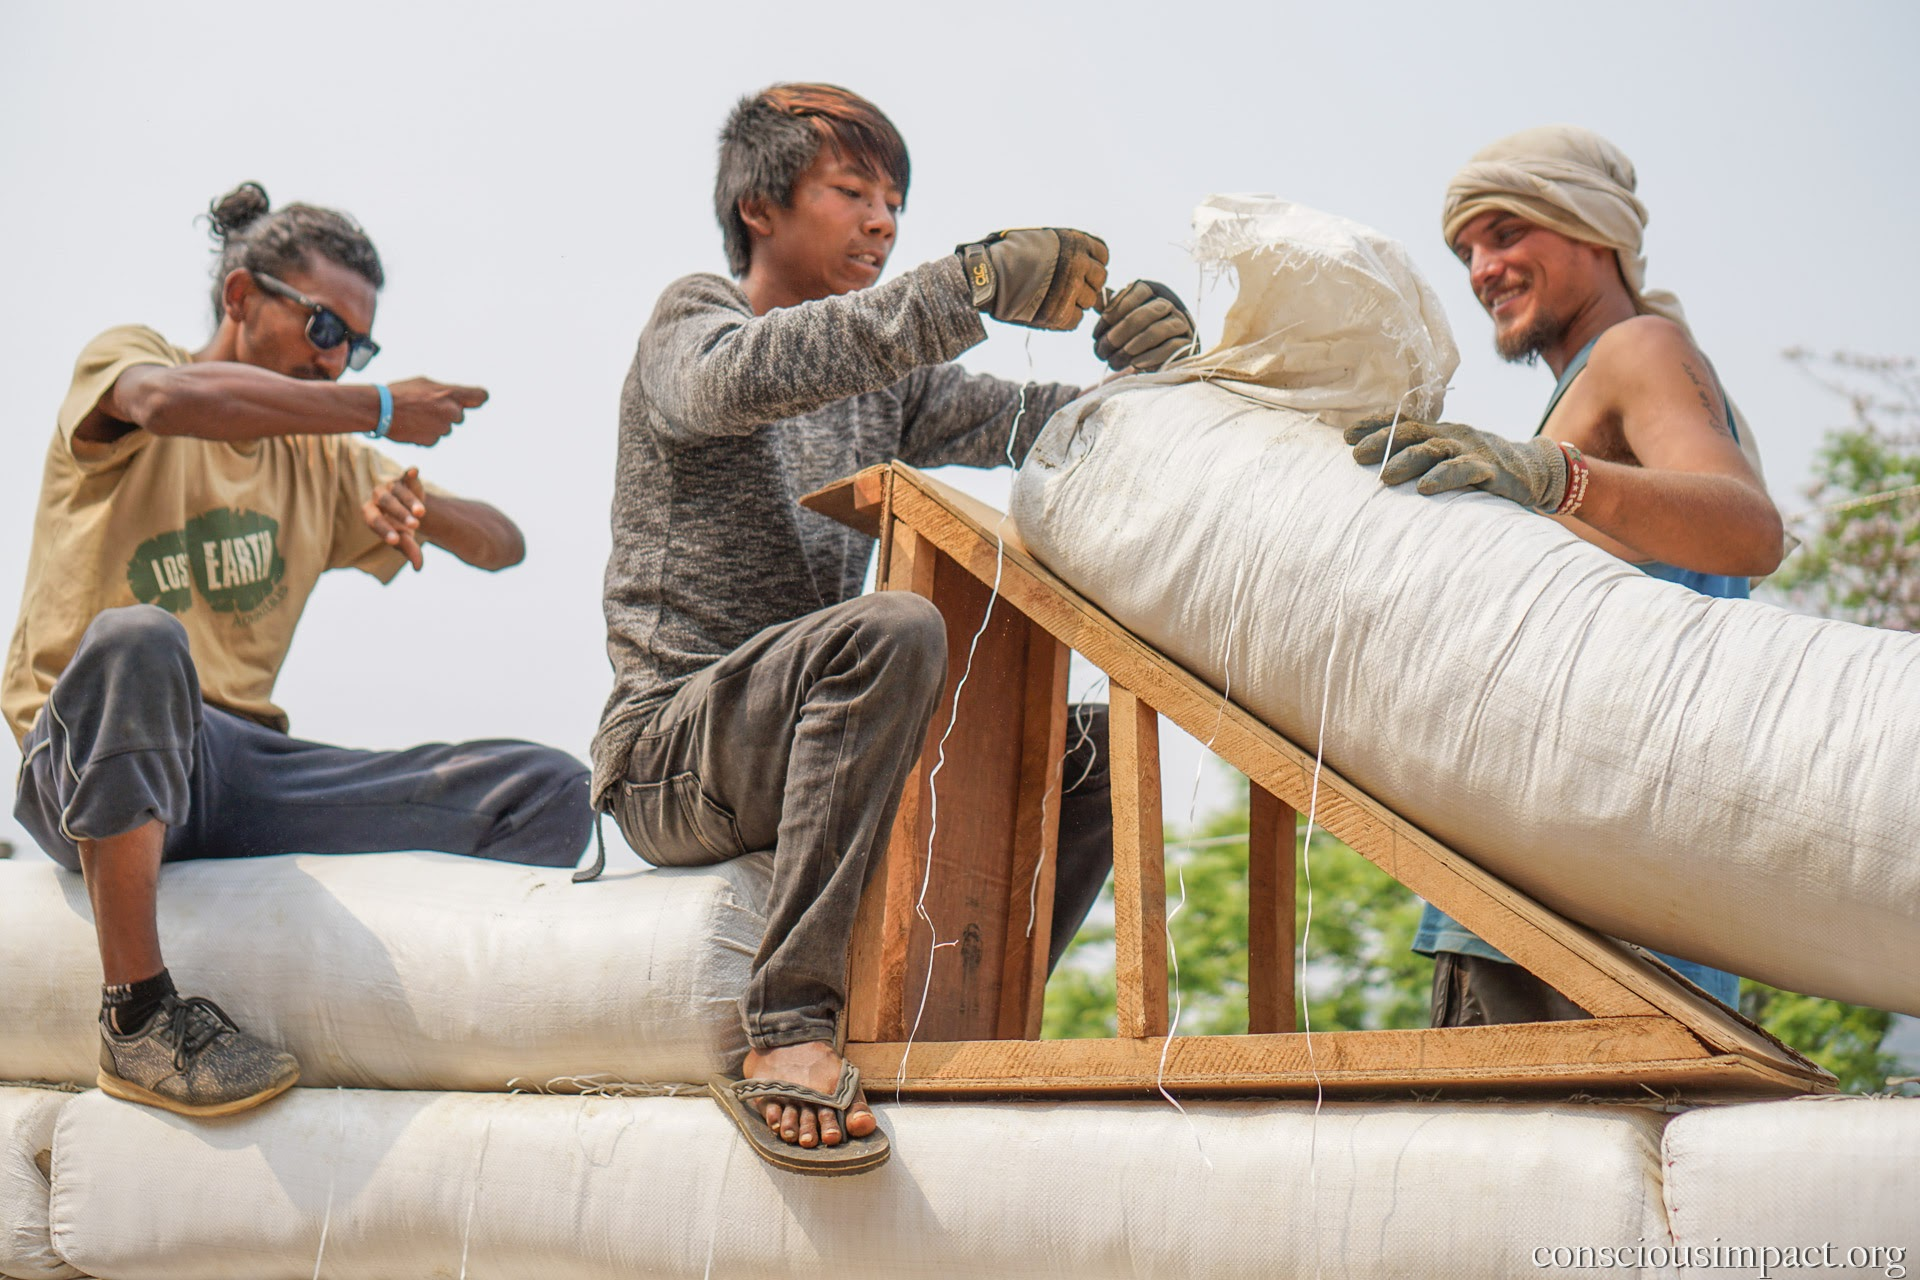 The Conscious Impact construction team, alongside local community members, build a home for a family in need in rural Nepal. Photo by Jonathan H. Lee